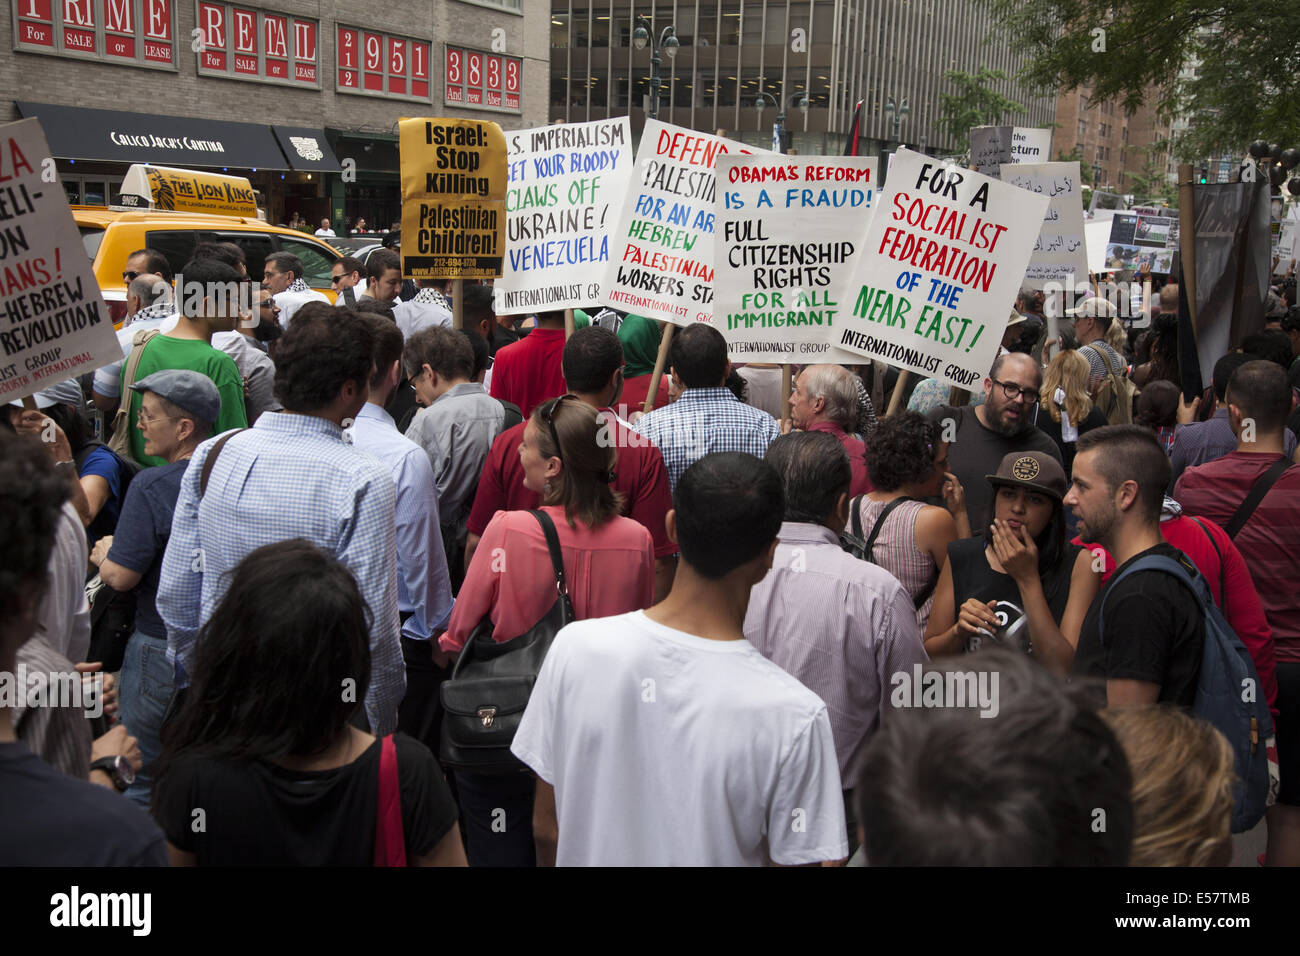 Large pro-Palestinian, anti-Israeli rally near the Israeli Consulate in New York City. Group then marched thru midtown - Stock Image